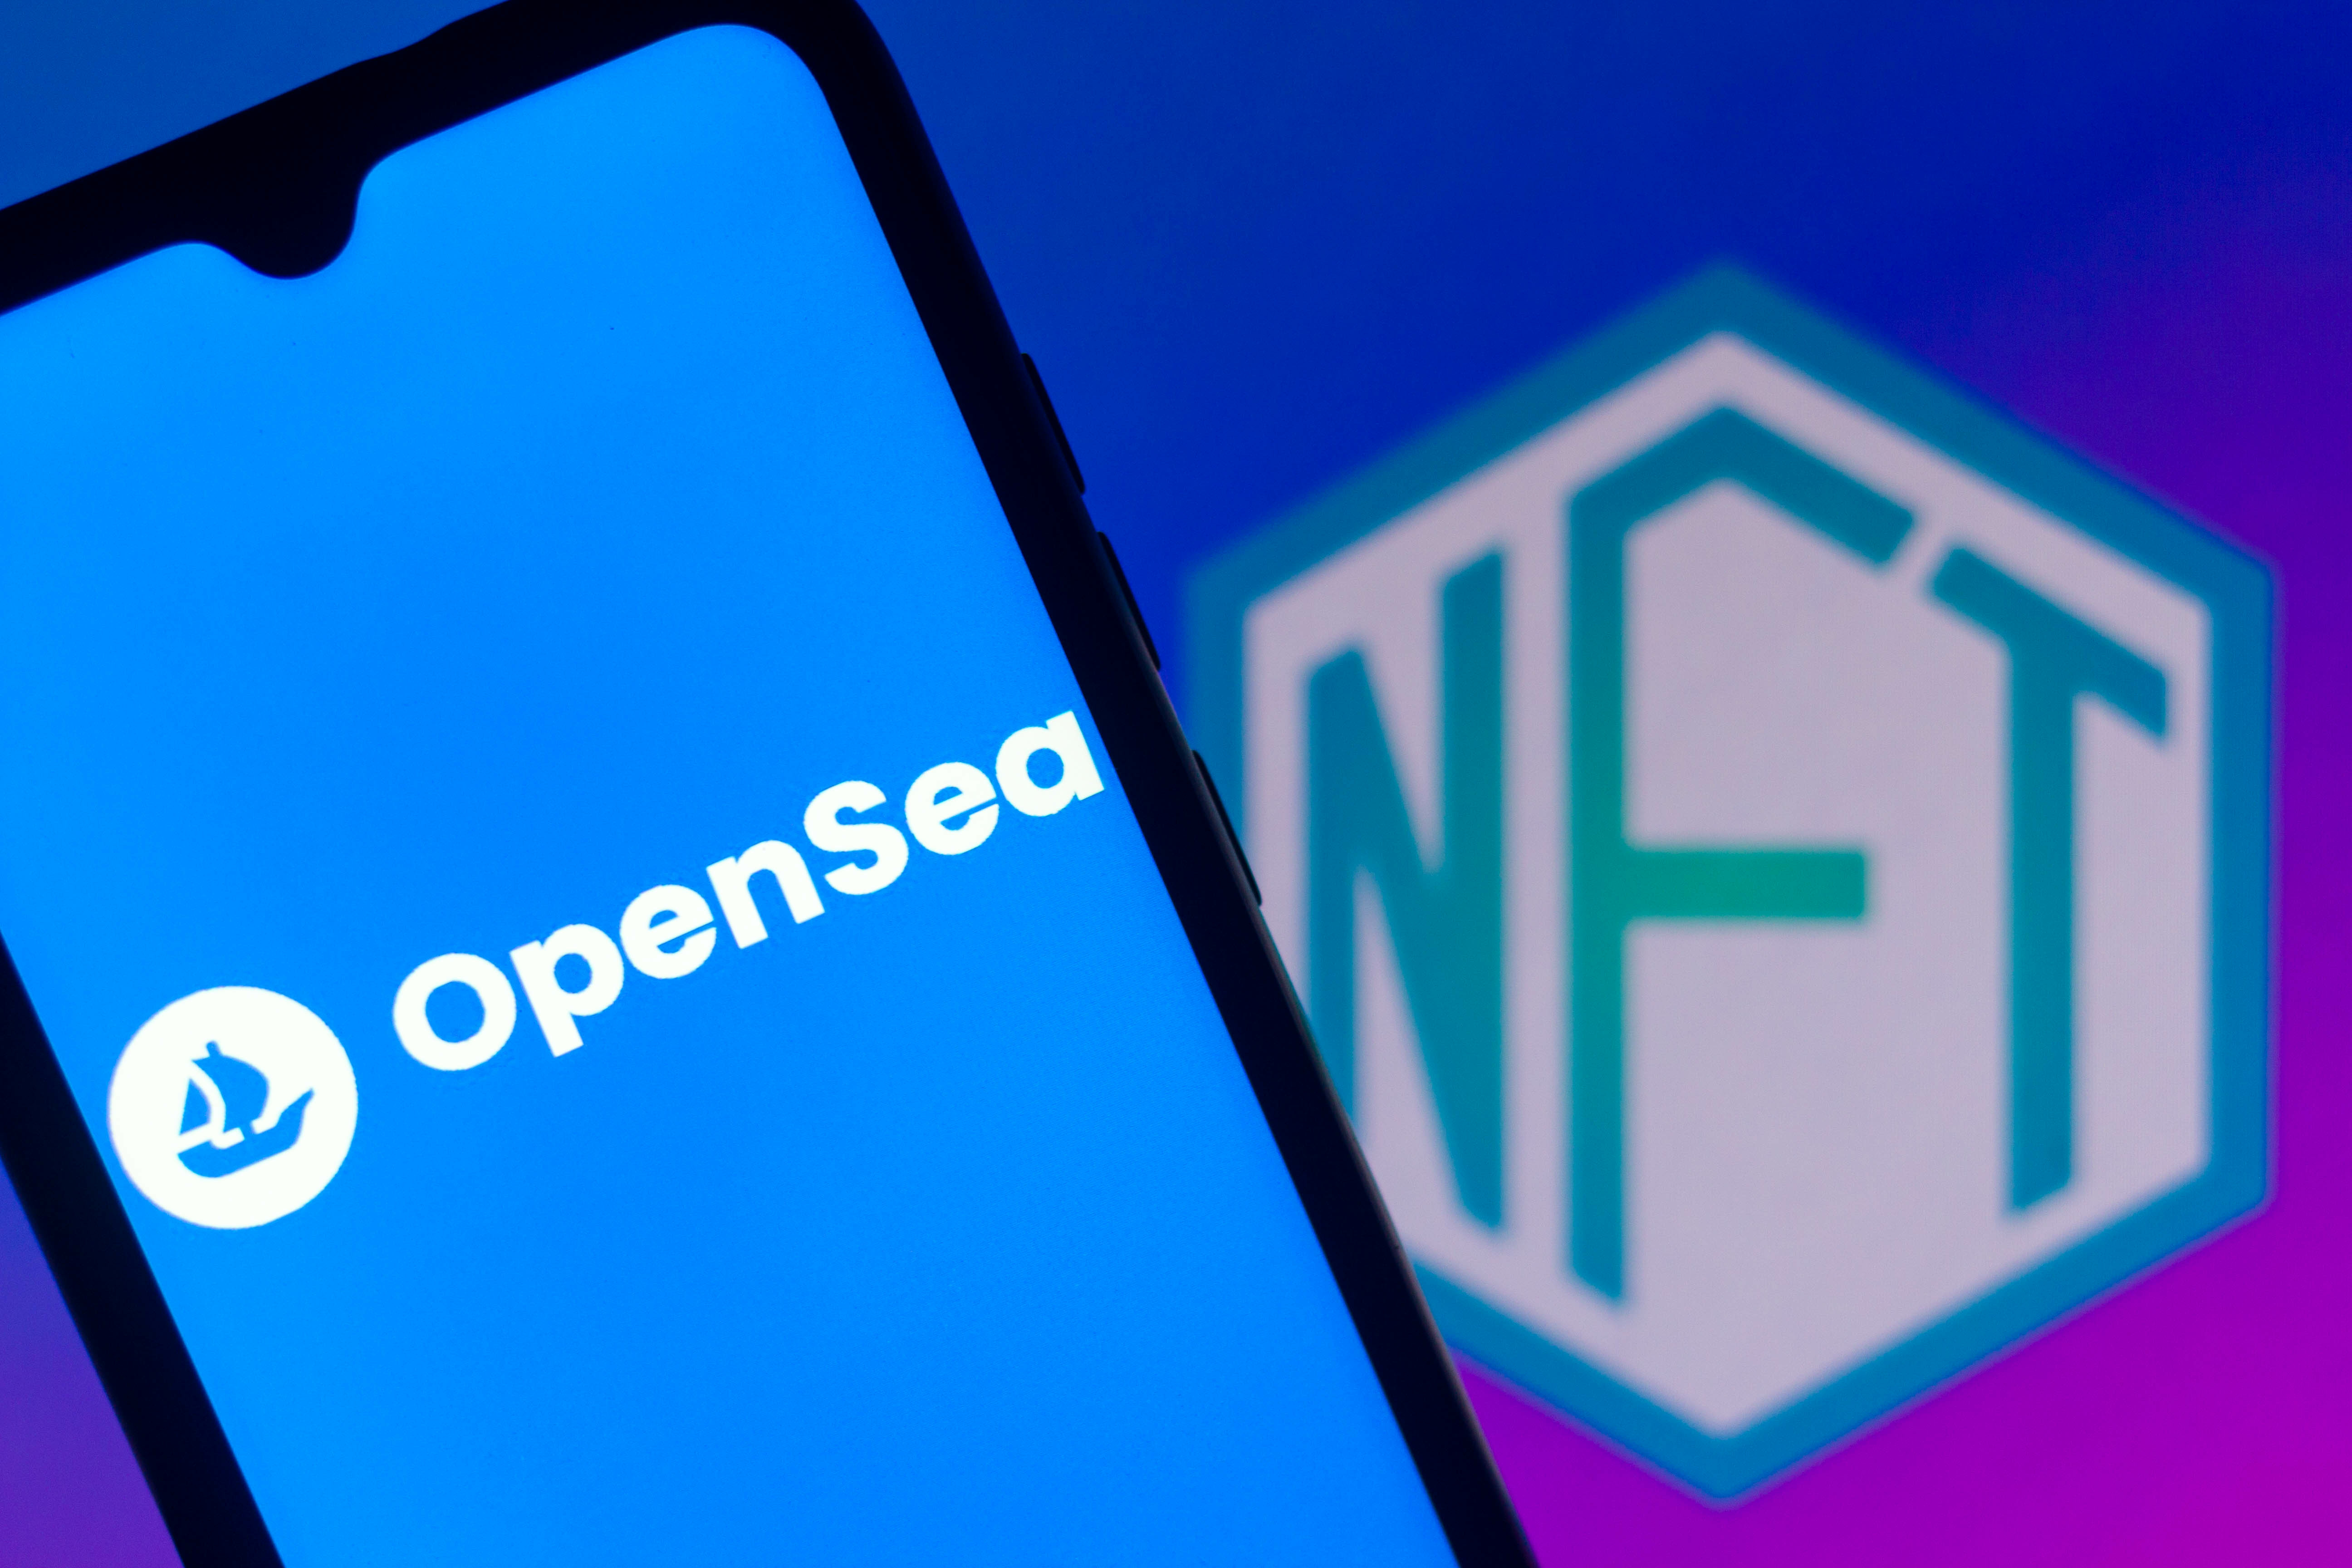 OpenSea To Expand Beyond Ethereum, Eyes 'Broadening' of Marketplace – CEO